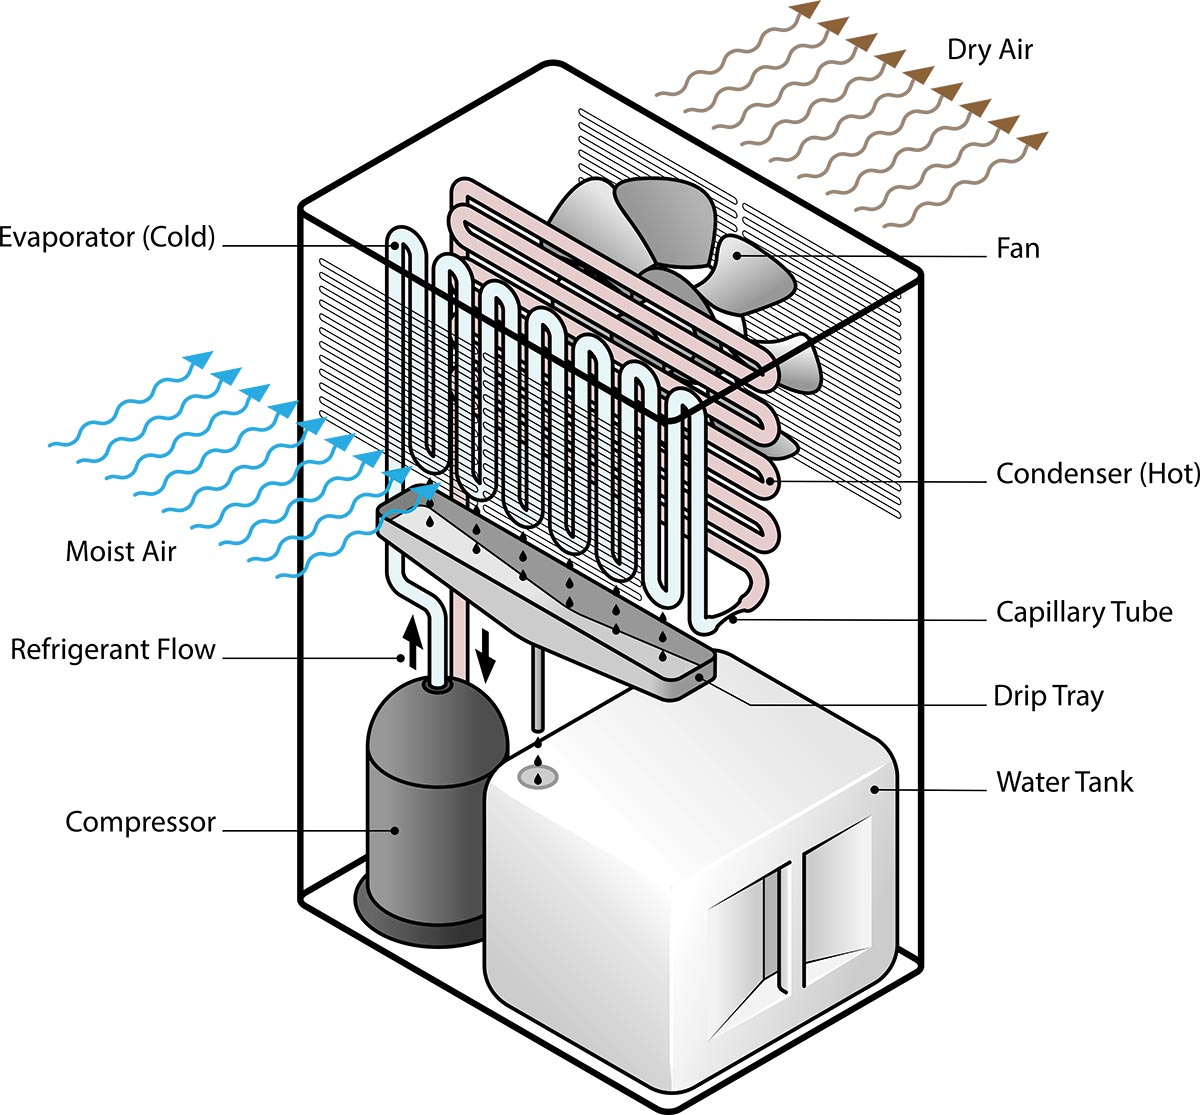 how does the dehumidifier work